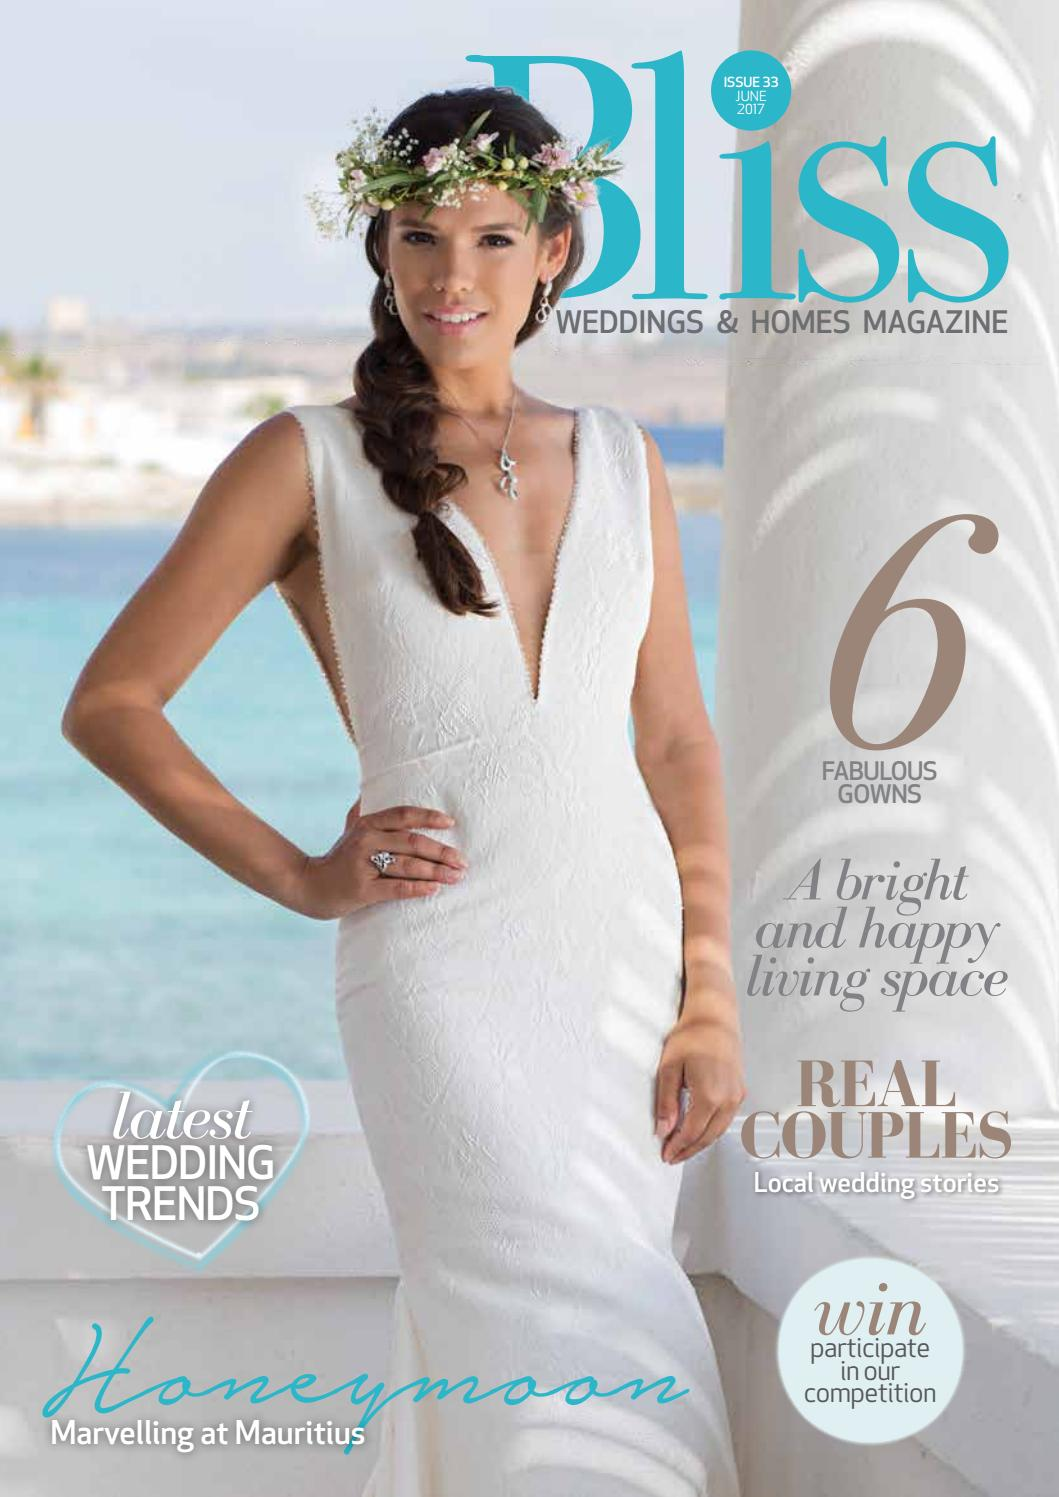 Wedding on the islands - sink into the world of pleasure and bliss